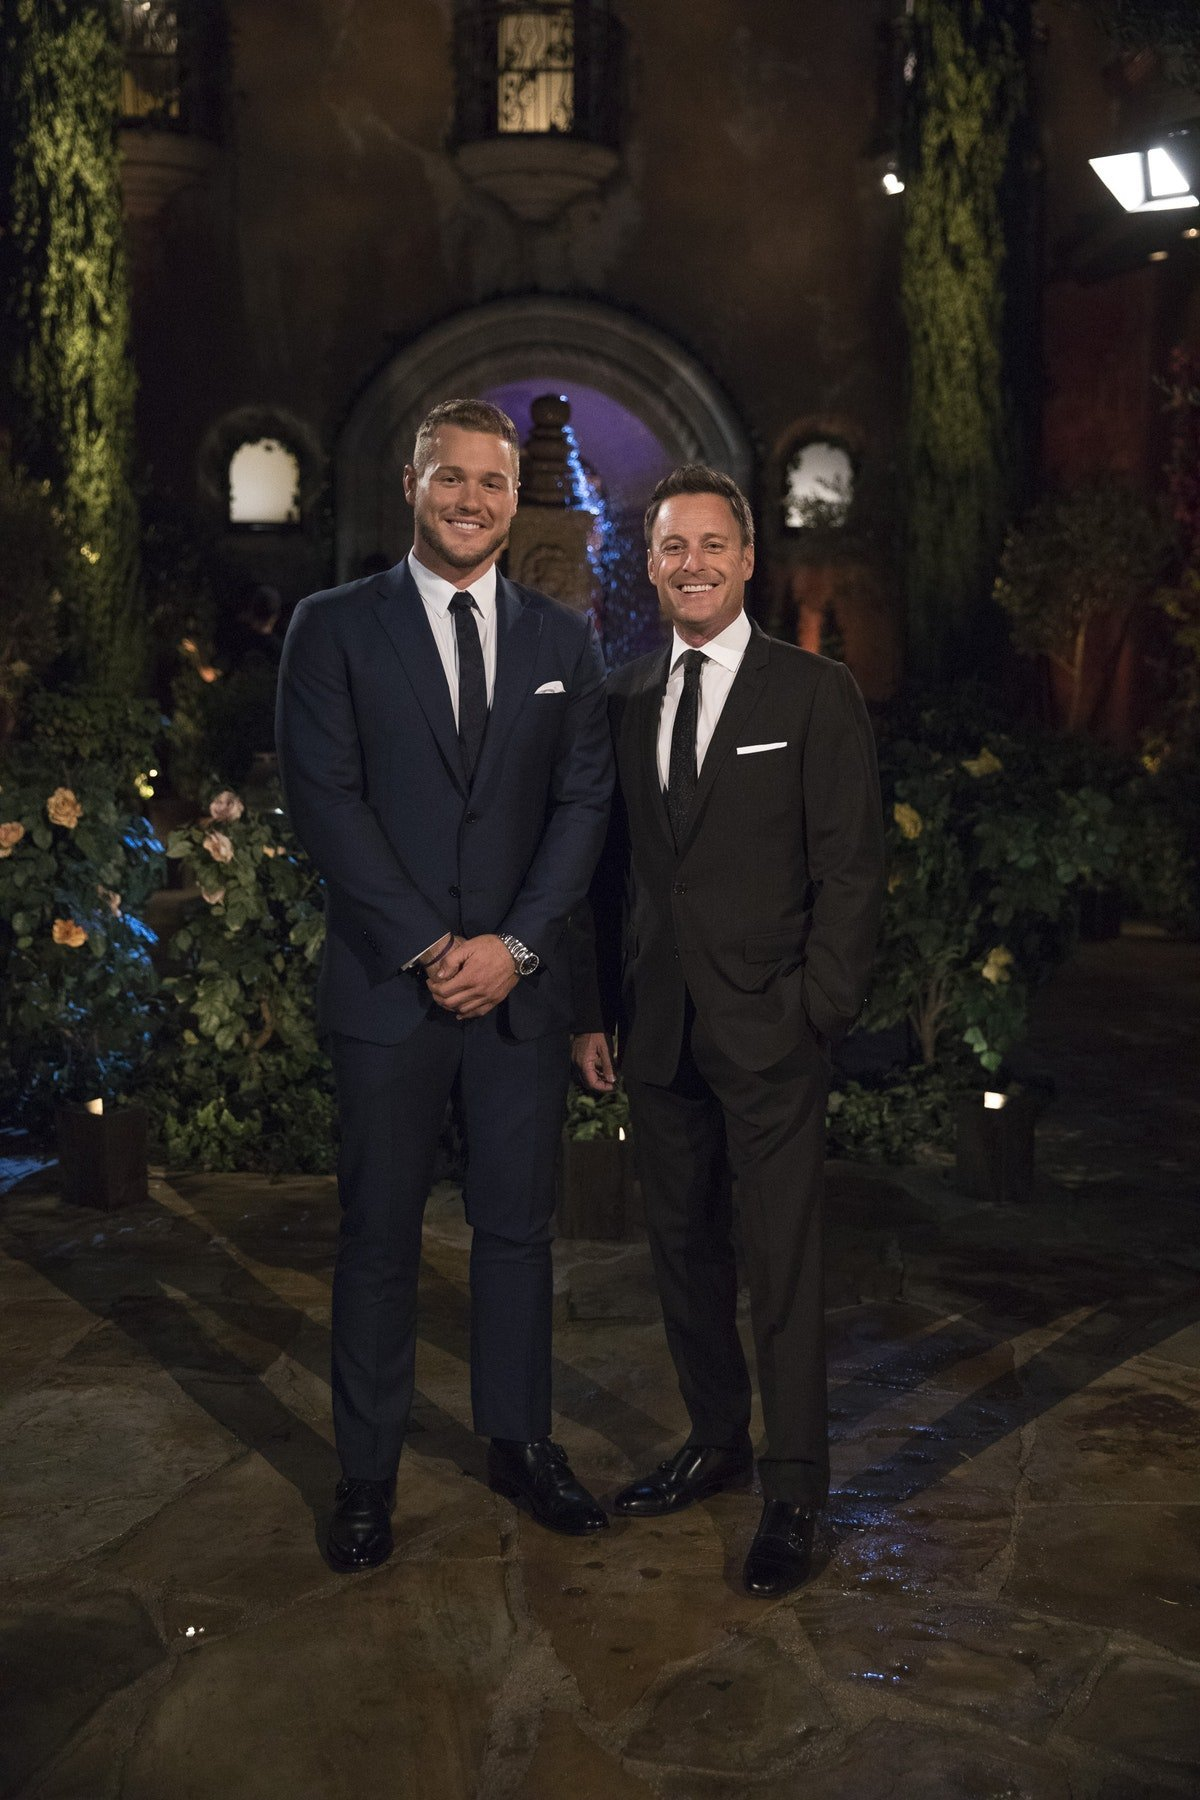 'The Bachelor' Season 23 Will Have A Totally Unique Ending, According To Blake Horstmann